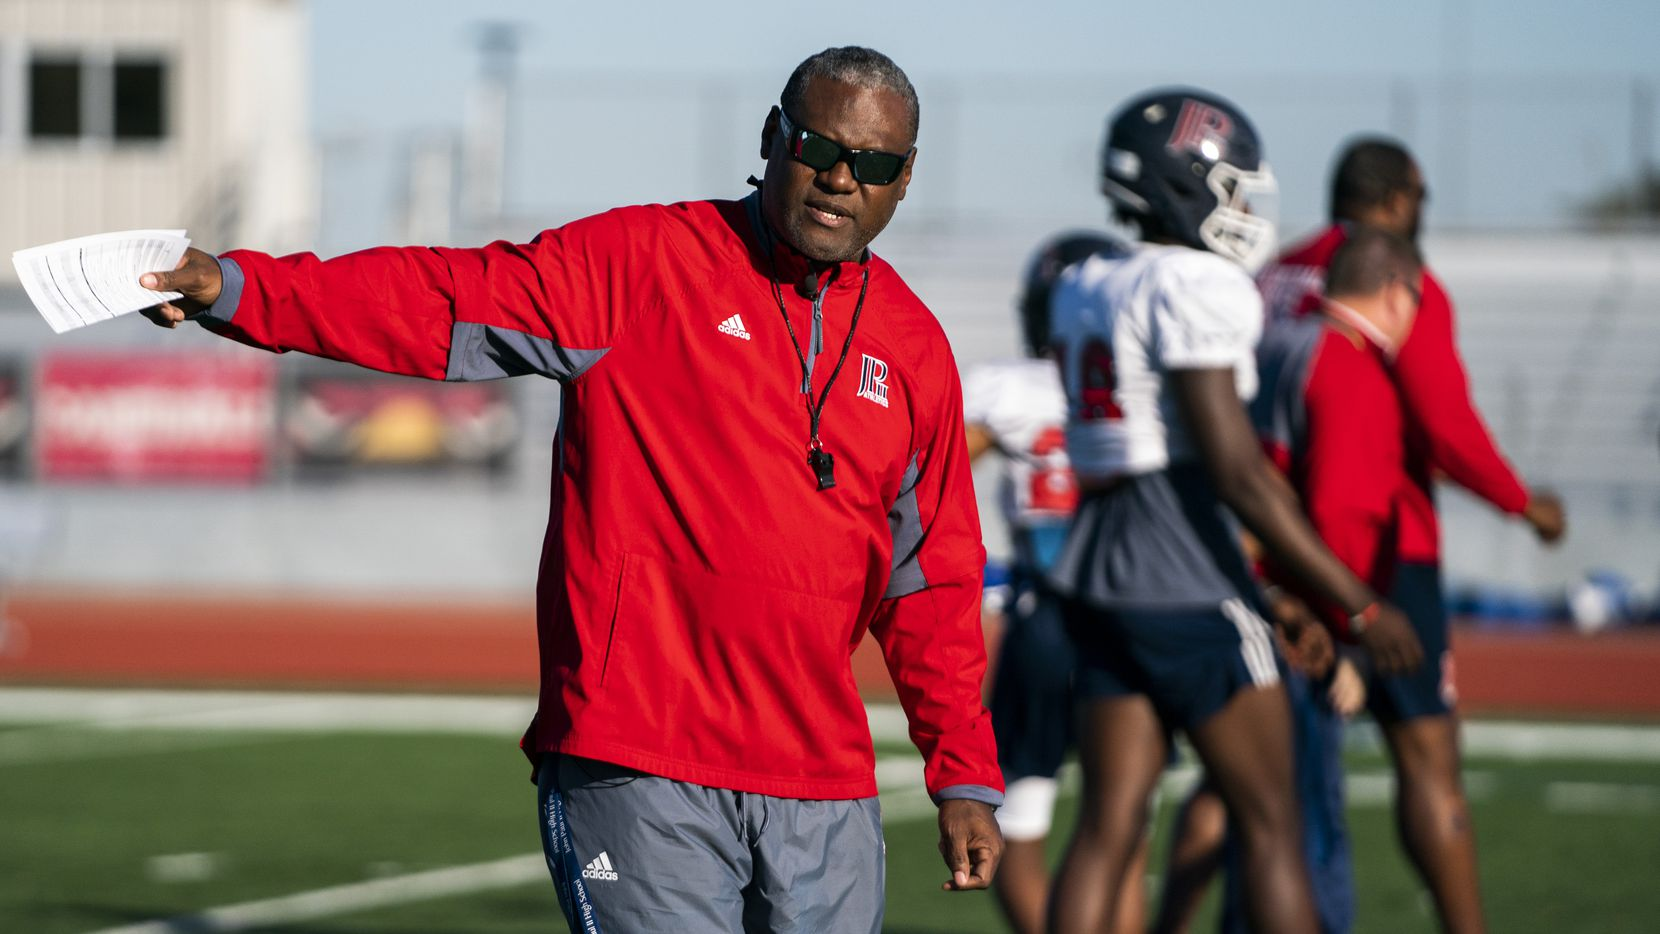 Head Coach George Teague gives instructions as the John Paul II High School football team practices on Tuesday, December 3, 2019 in Plano. They play in the TAPPS Division I state championship game on Friday. Teague was a safety for the Dallas Cowboys. (Ashley Landis/The Dallas Morning News)